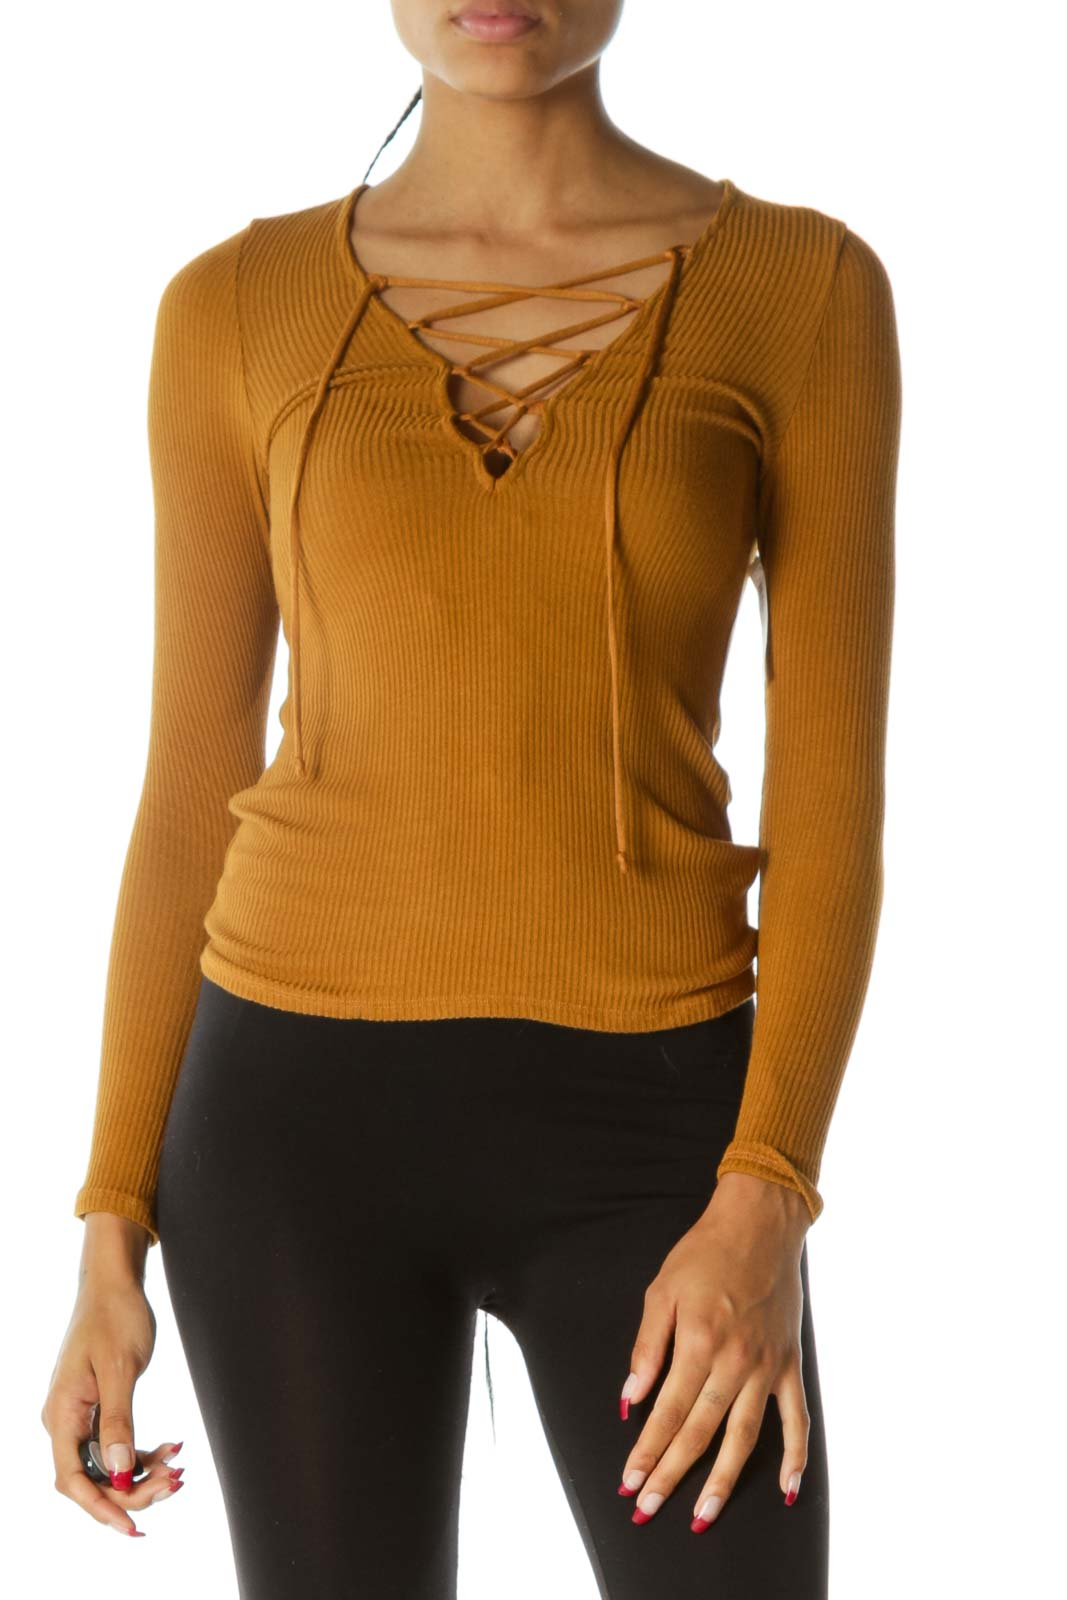 Mustard Yellow Crisscross Ribbed Texture Long Sleeve Stretch Top Front